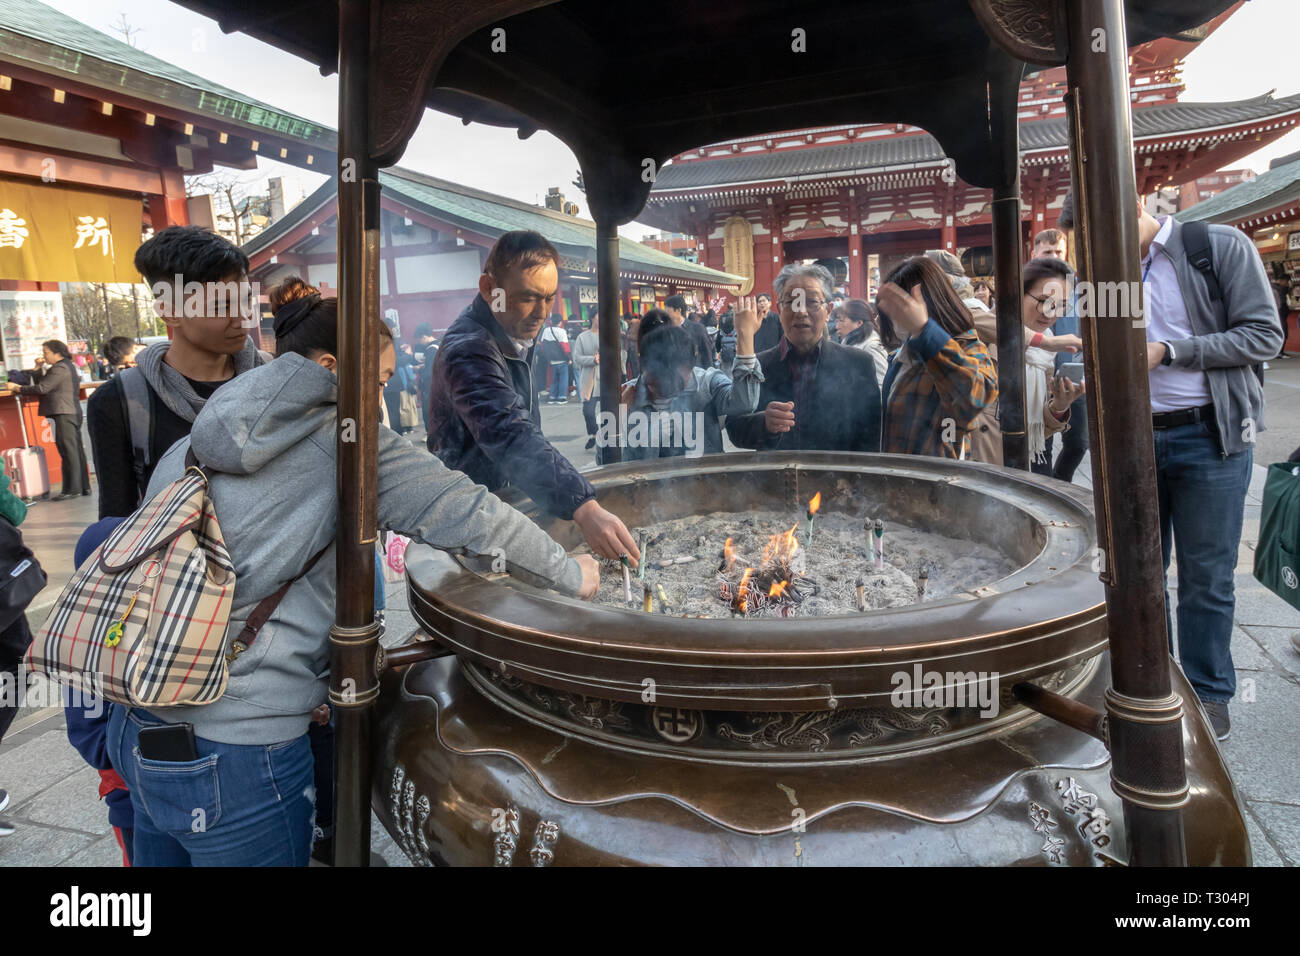 Tourists from all corners of the world come to Senso-Ji temple to purify themselves with what they believe to be a healing incense of Jokoro - Stock Image